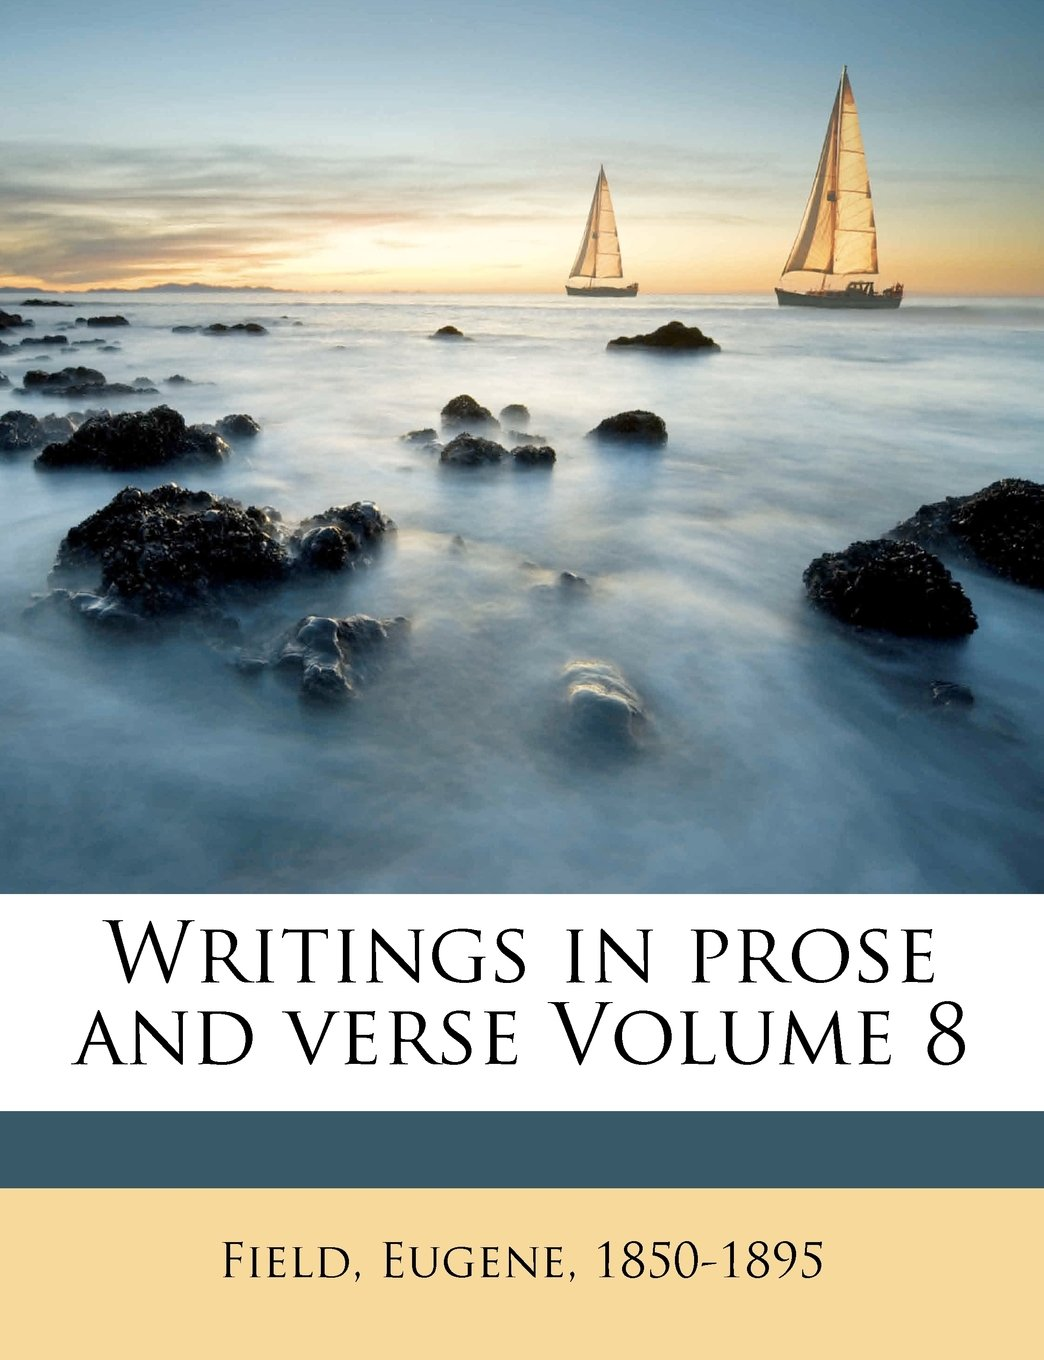 Download Writings in prose and verse Volume 8 PDF